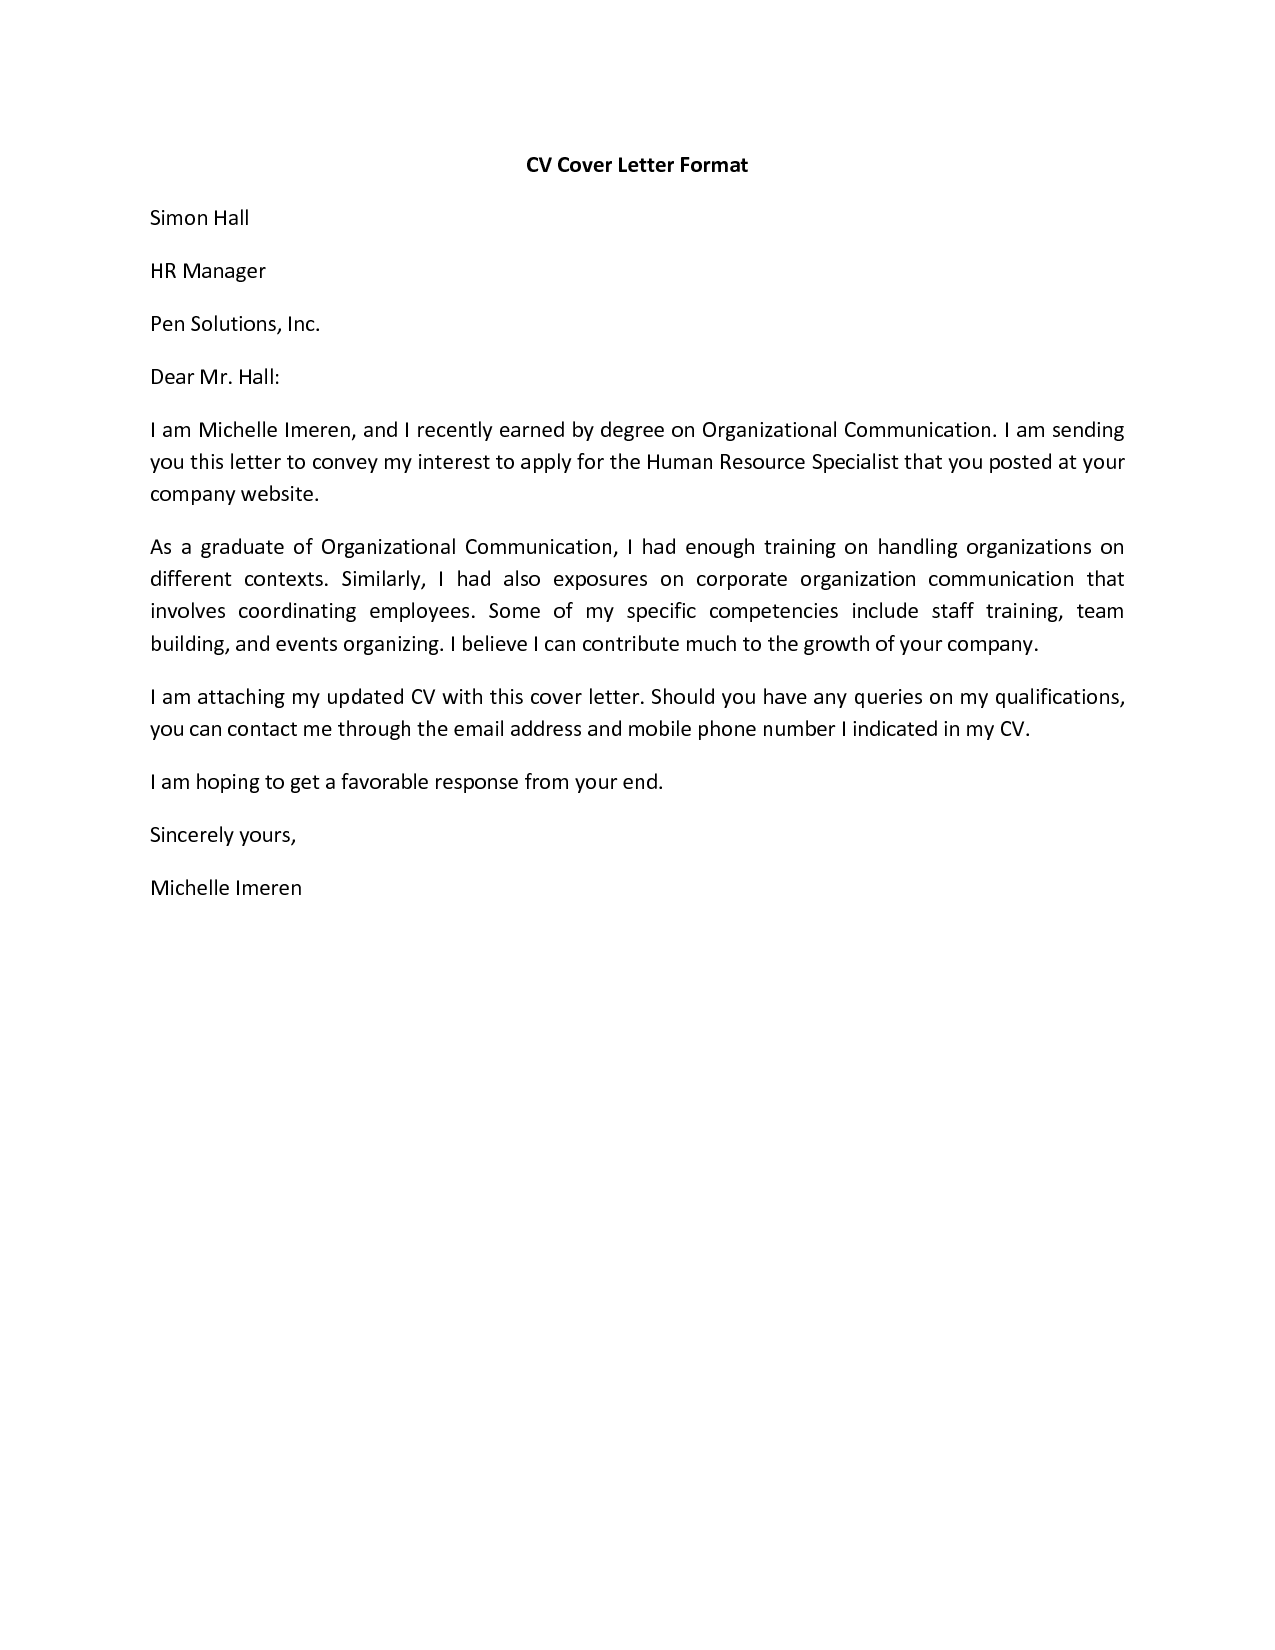 Cover letter for resume rich image and wallpaper for What is a covering letter with a cv